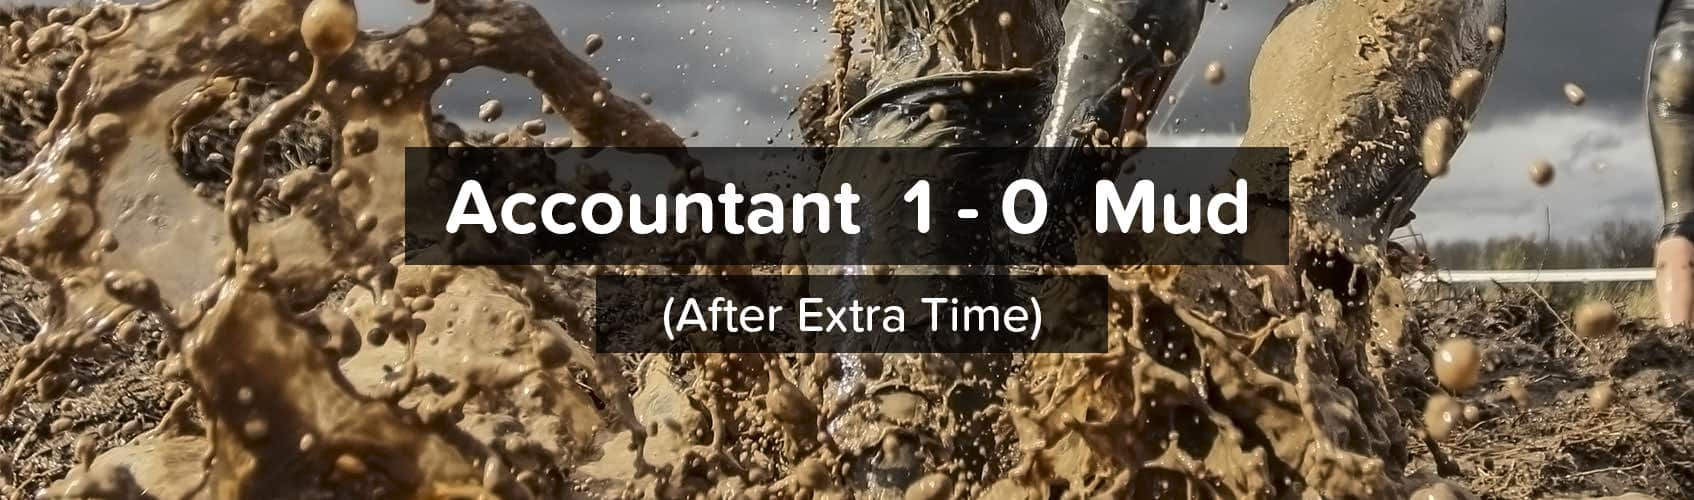 Accountant 1 - Mud 0